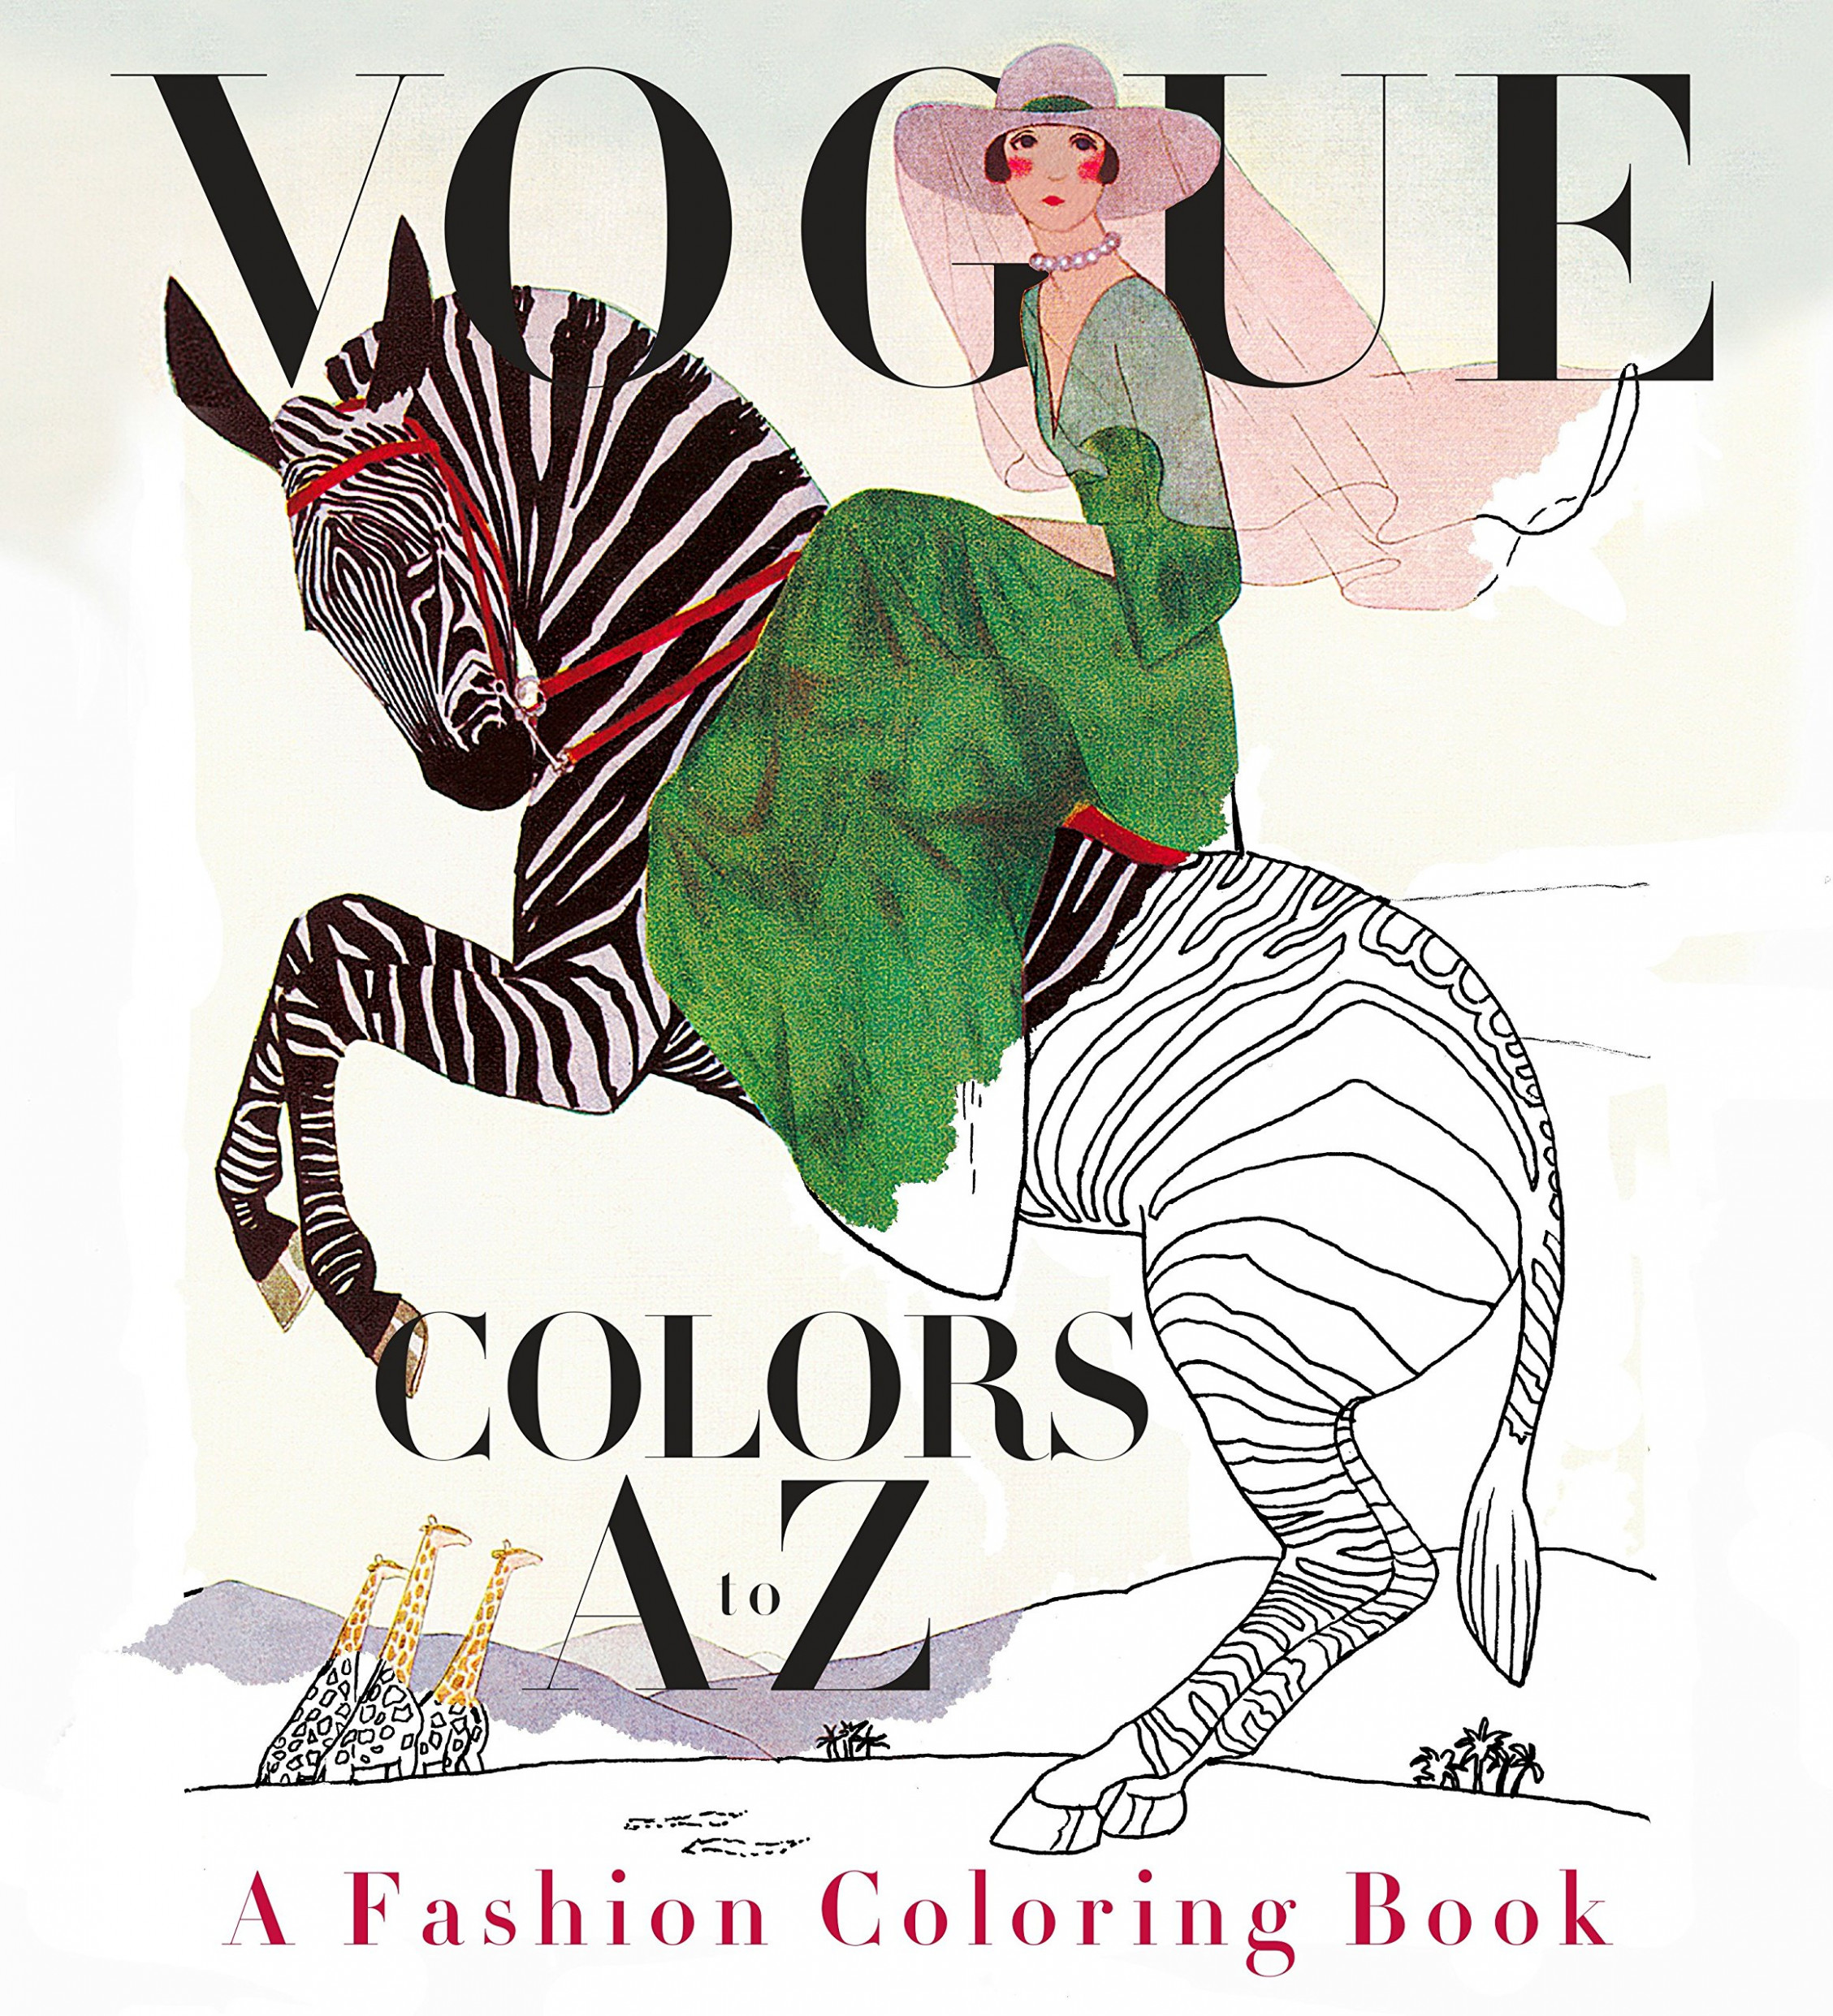 Amazon.com: Vogue Colors A to Z: A Fashion Coloring Book ..